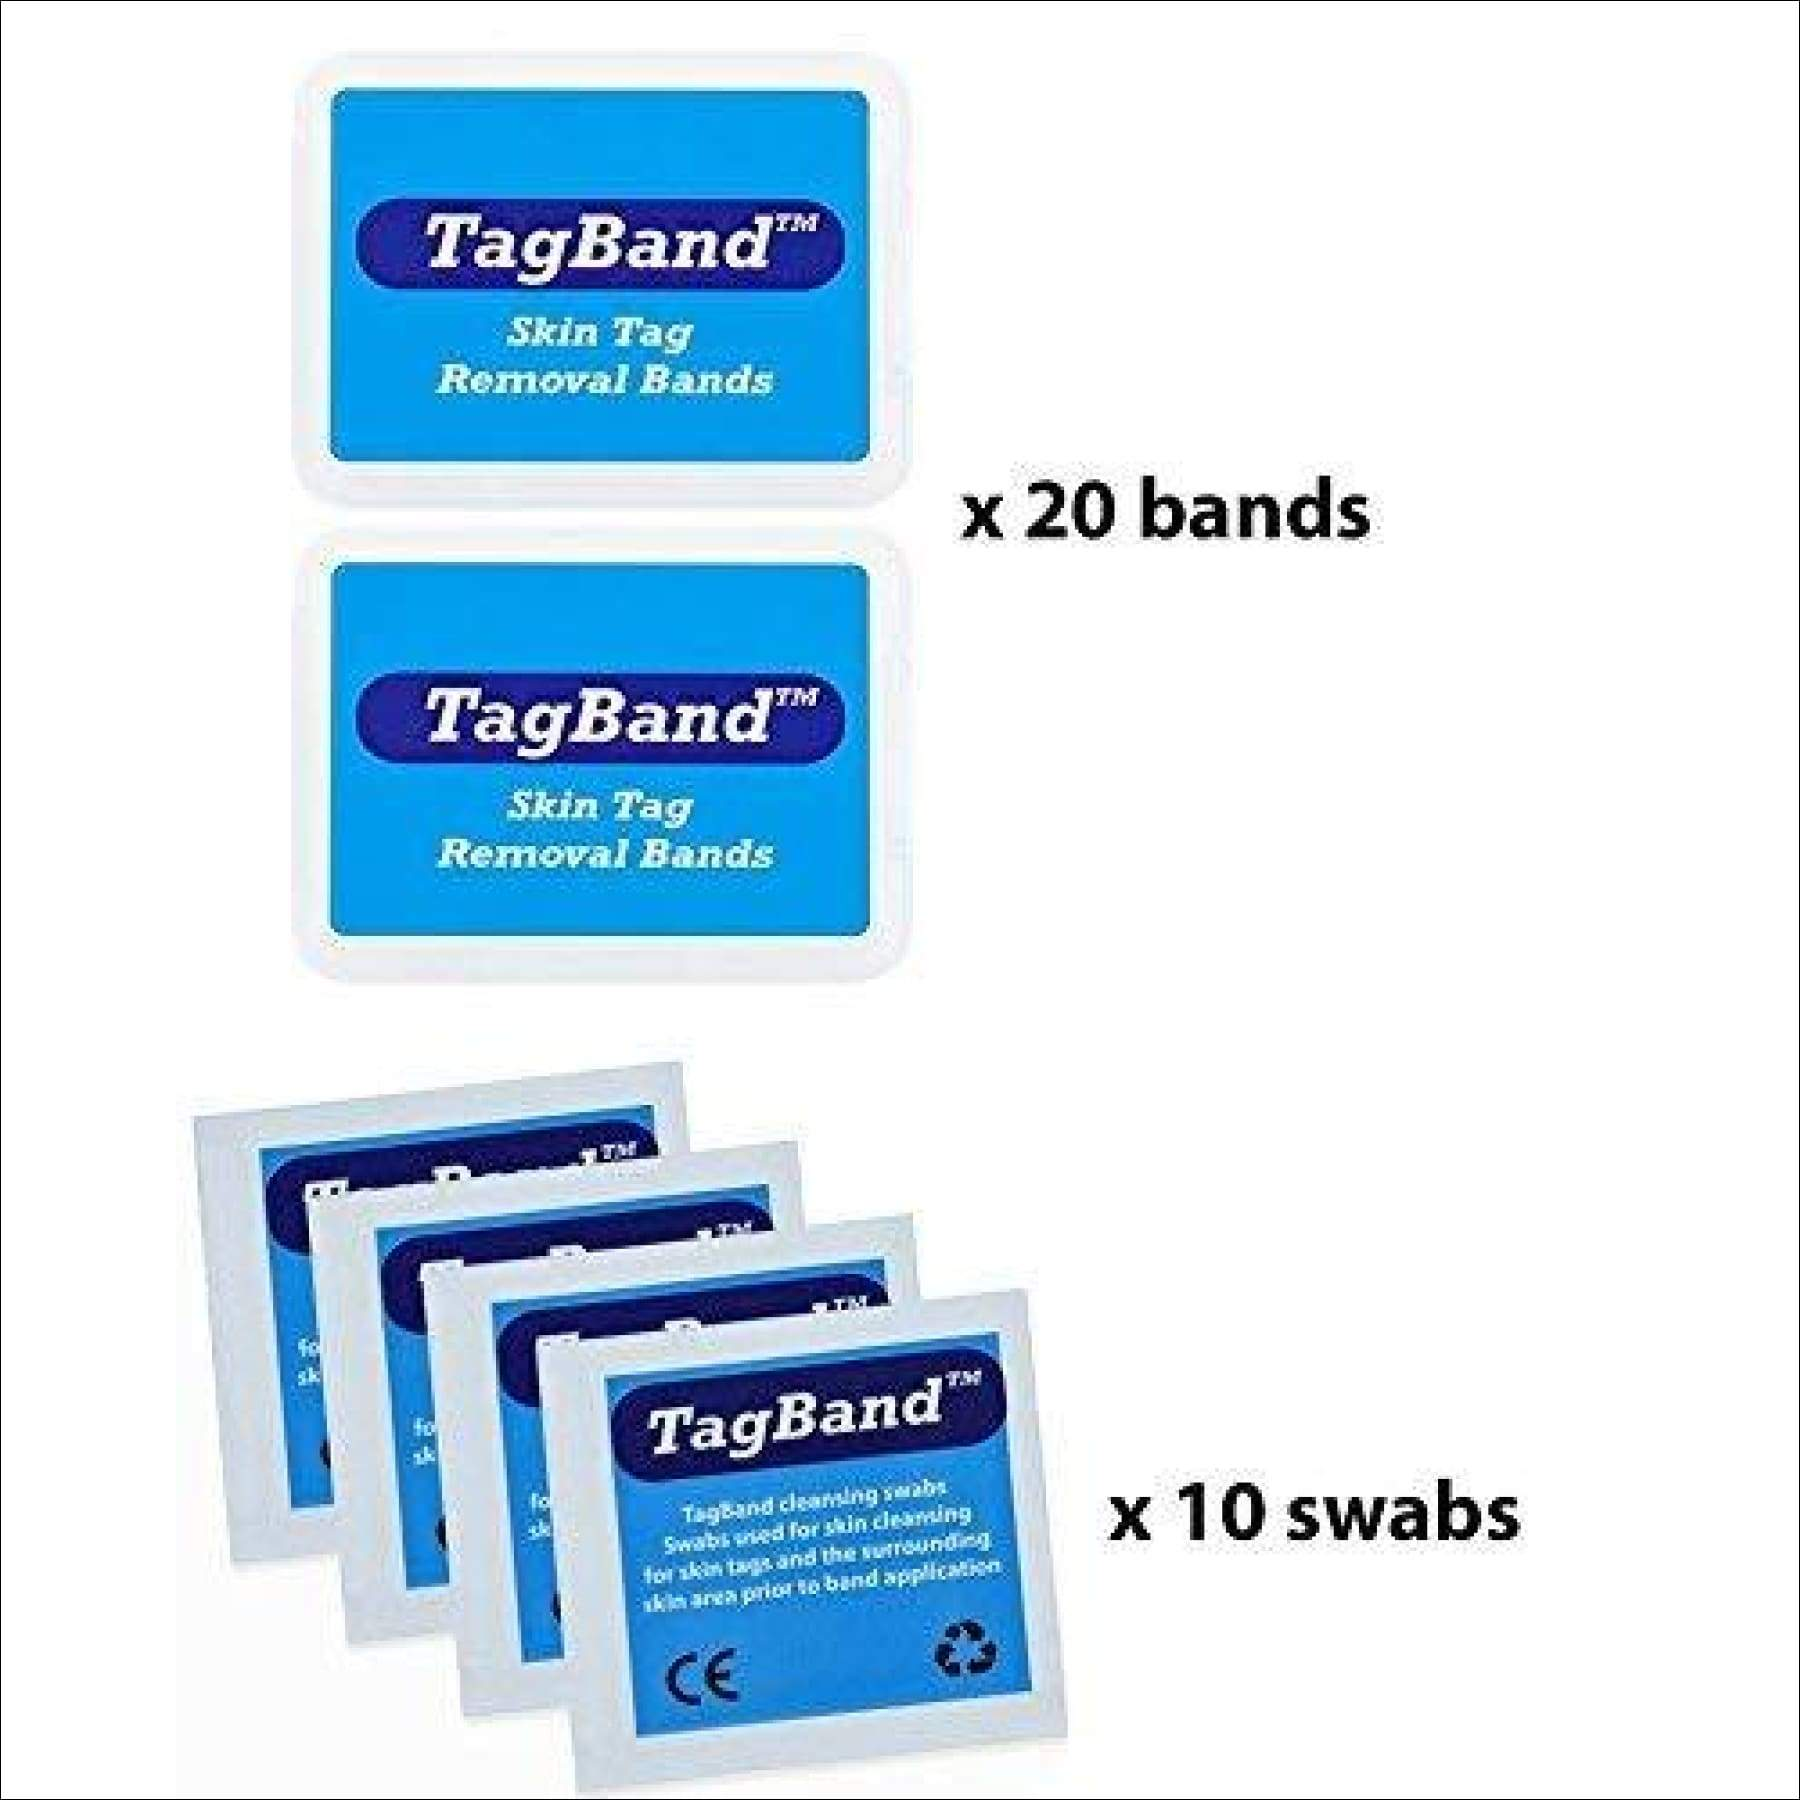 Micro Tagband Refill Band Pack For Skin Tag Remover Device